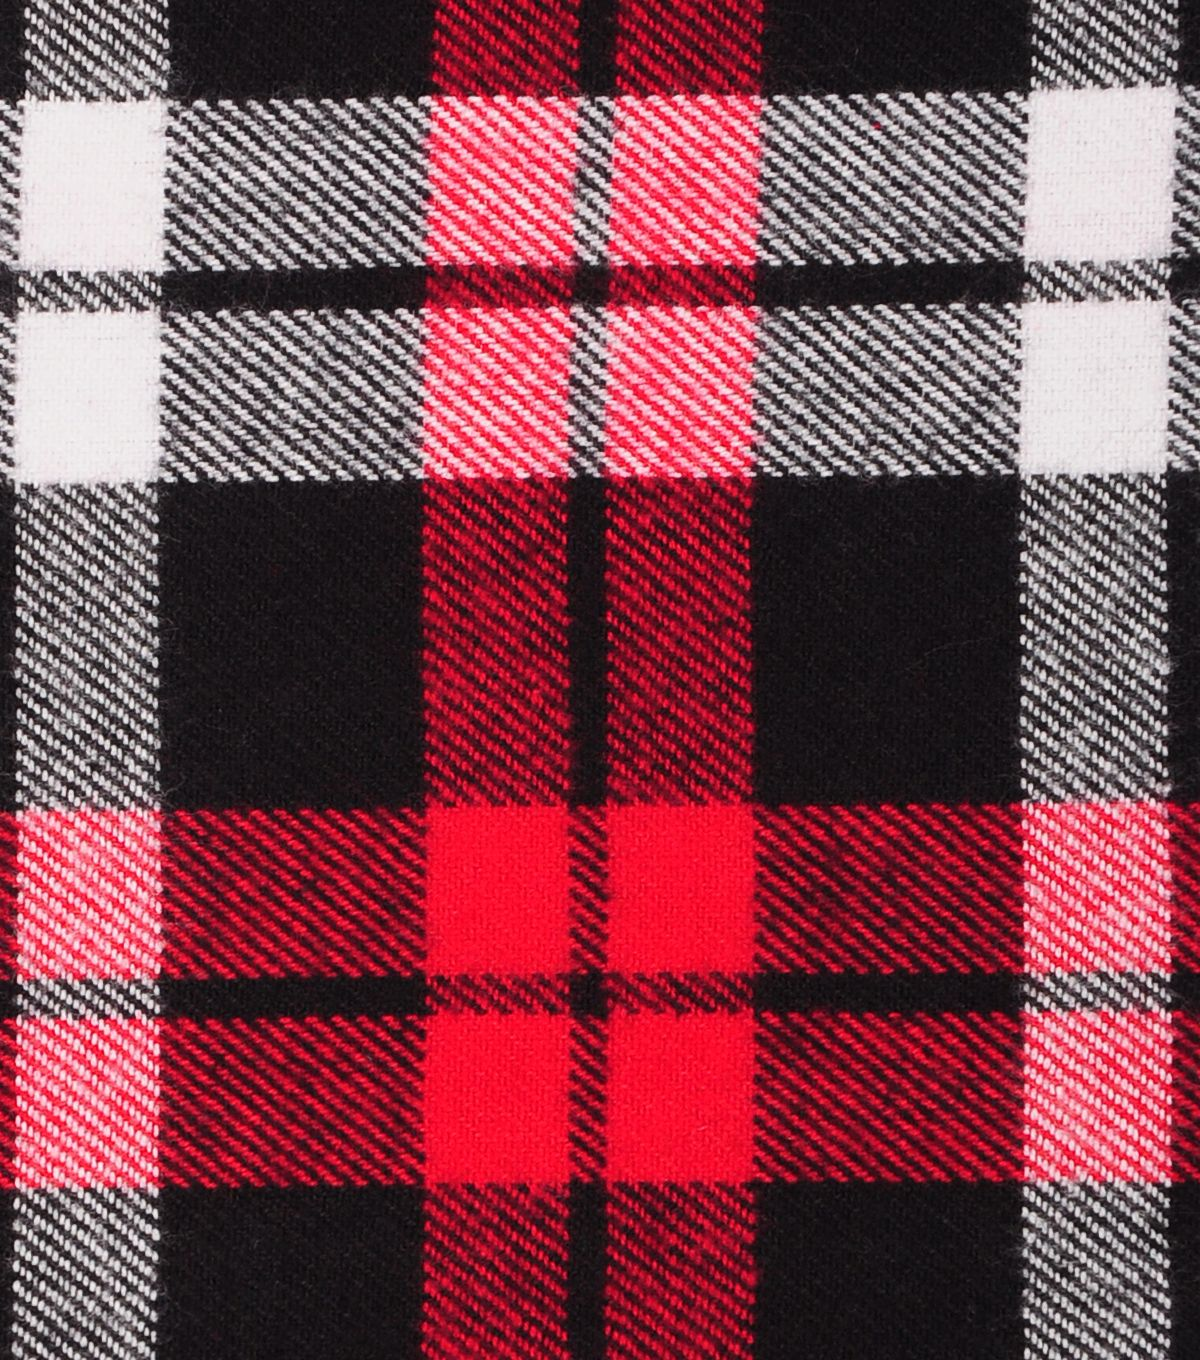 Plaiditudes Brushed Cotton Fabric Red White Black Square Plaid Fabric Red And Black Plaid Native American Quilt